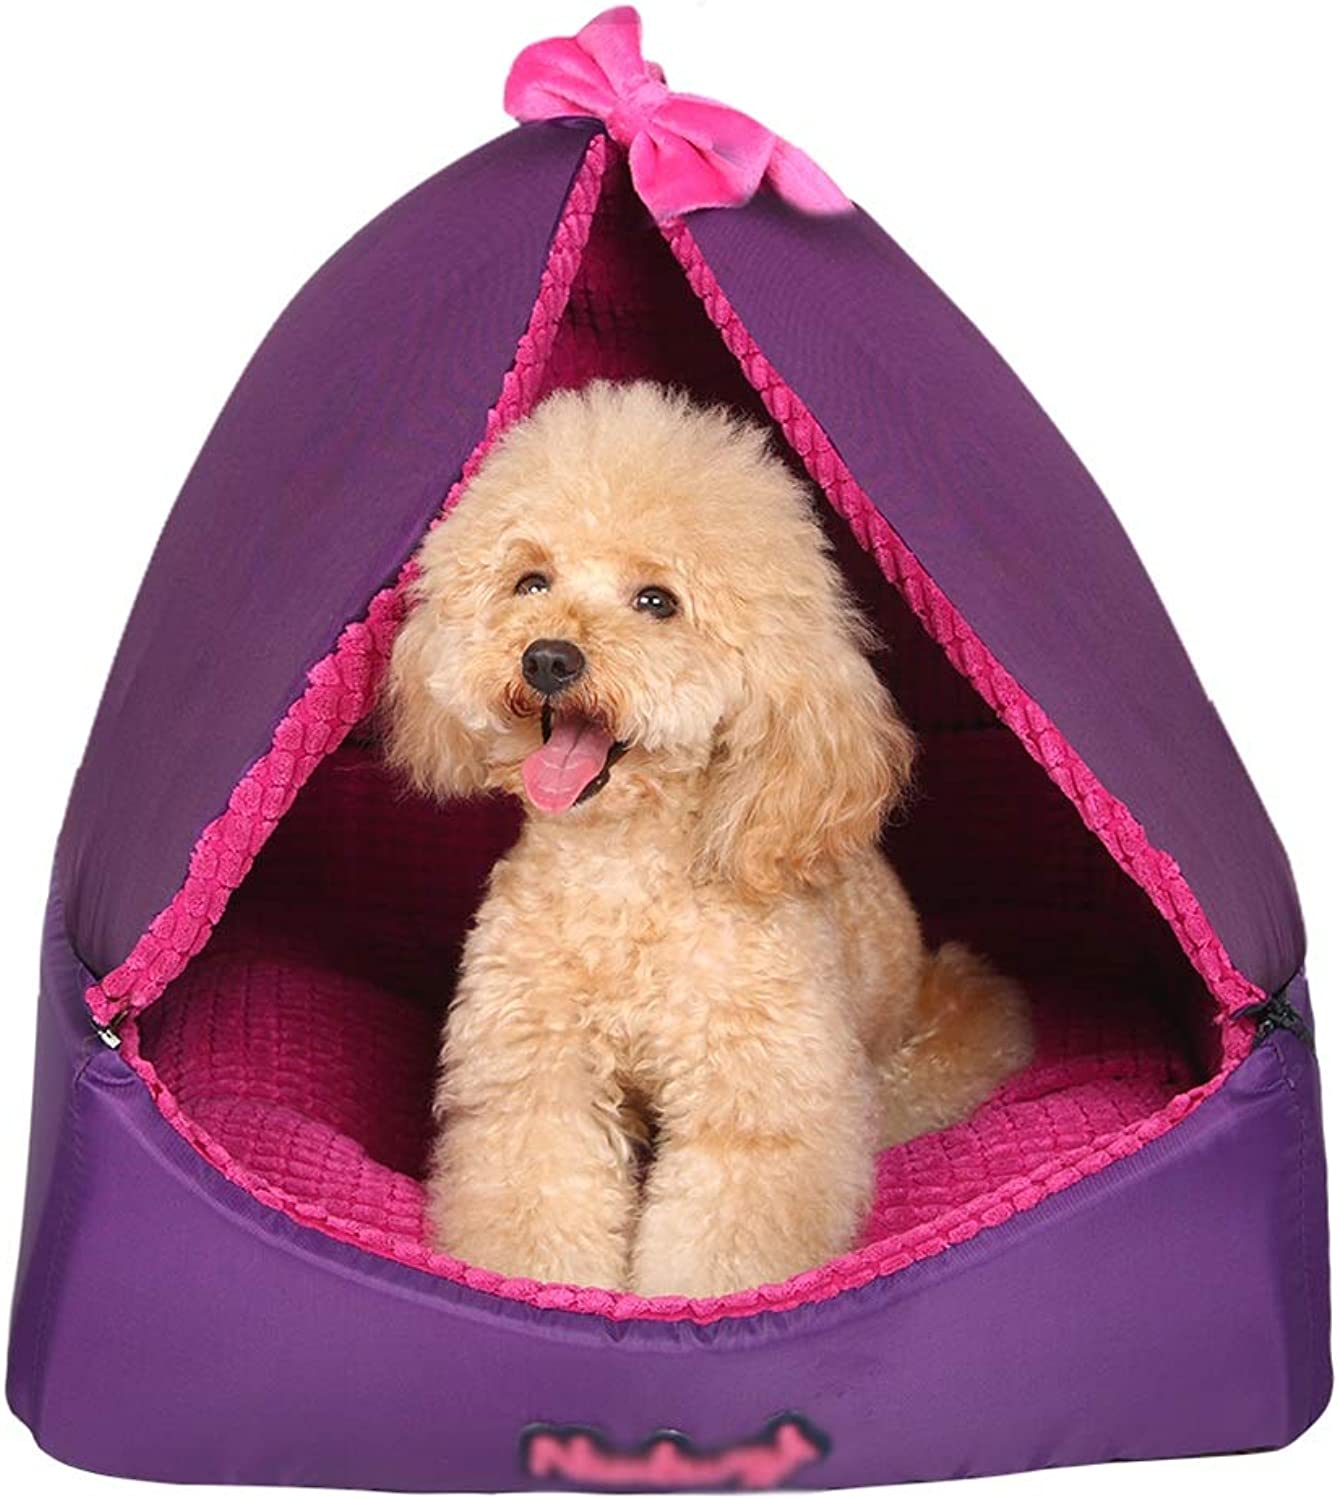 Pet house kennel Deep Sleeping Comfortable and breathable Wasable Pet room Oxford panno adatto per tutte le stagioni (Size:50 * 50 * 50)